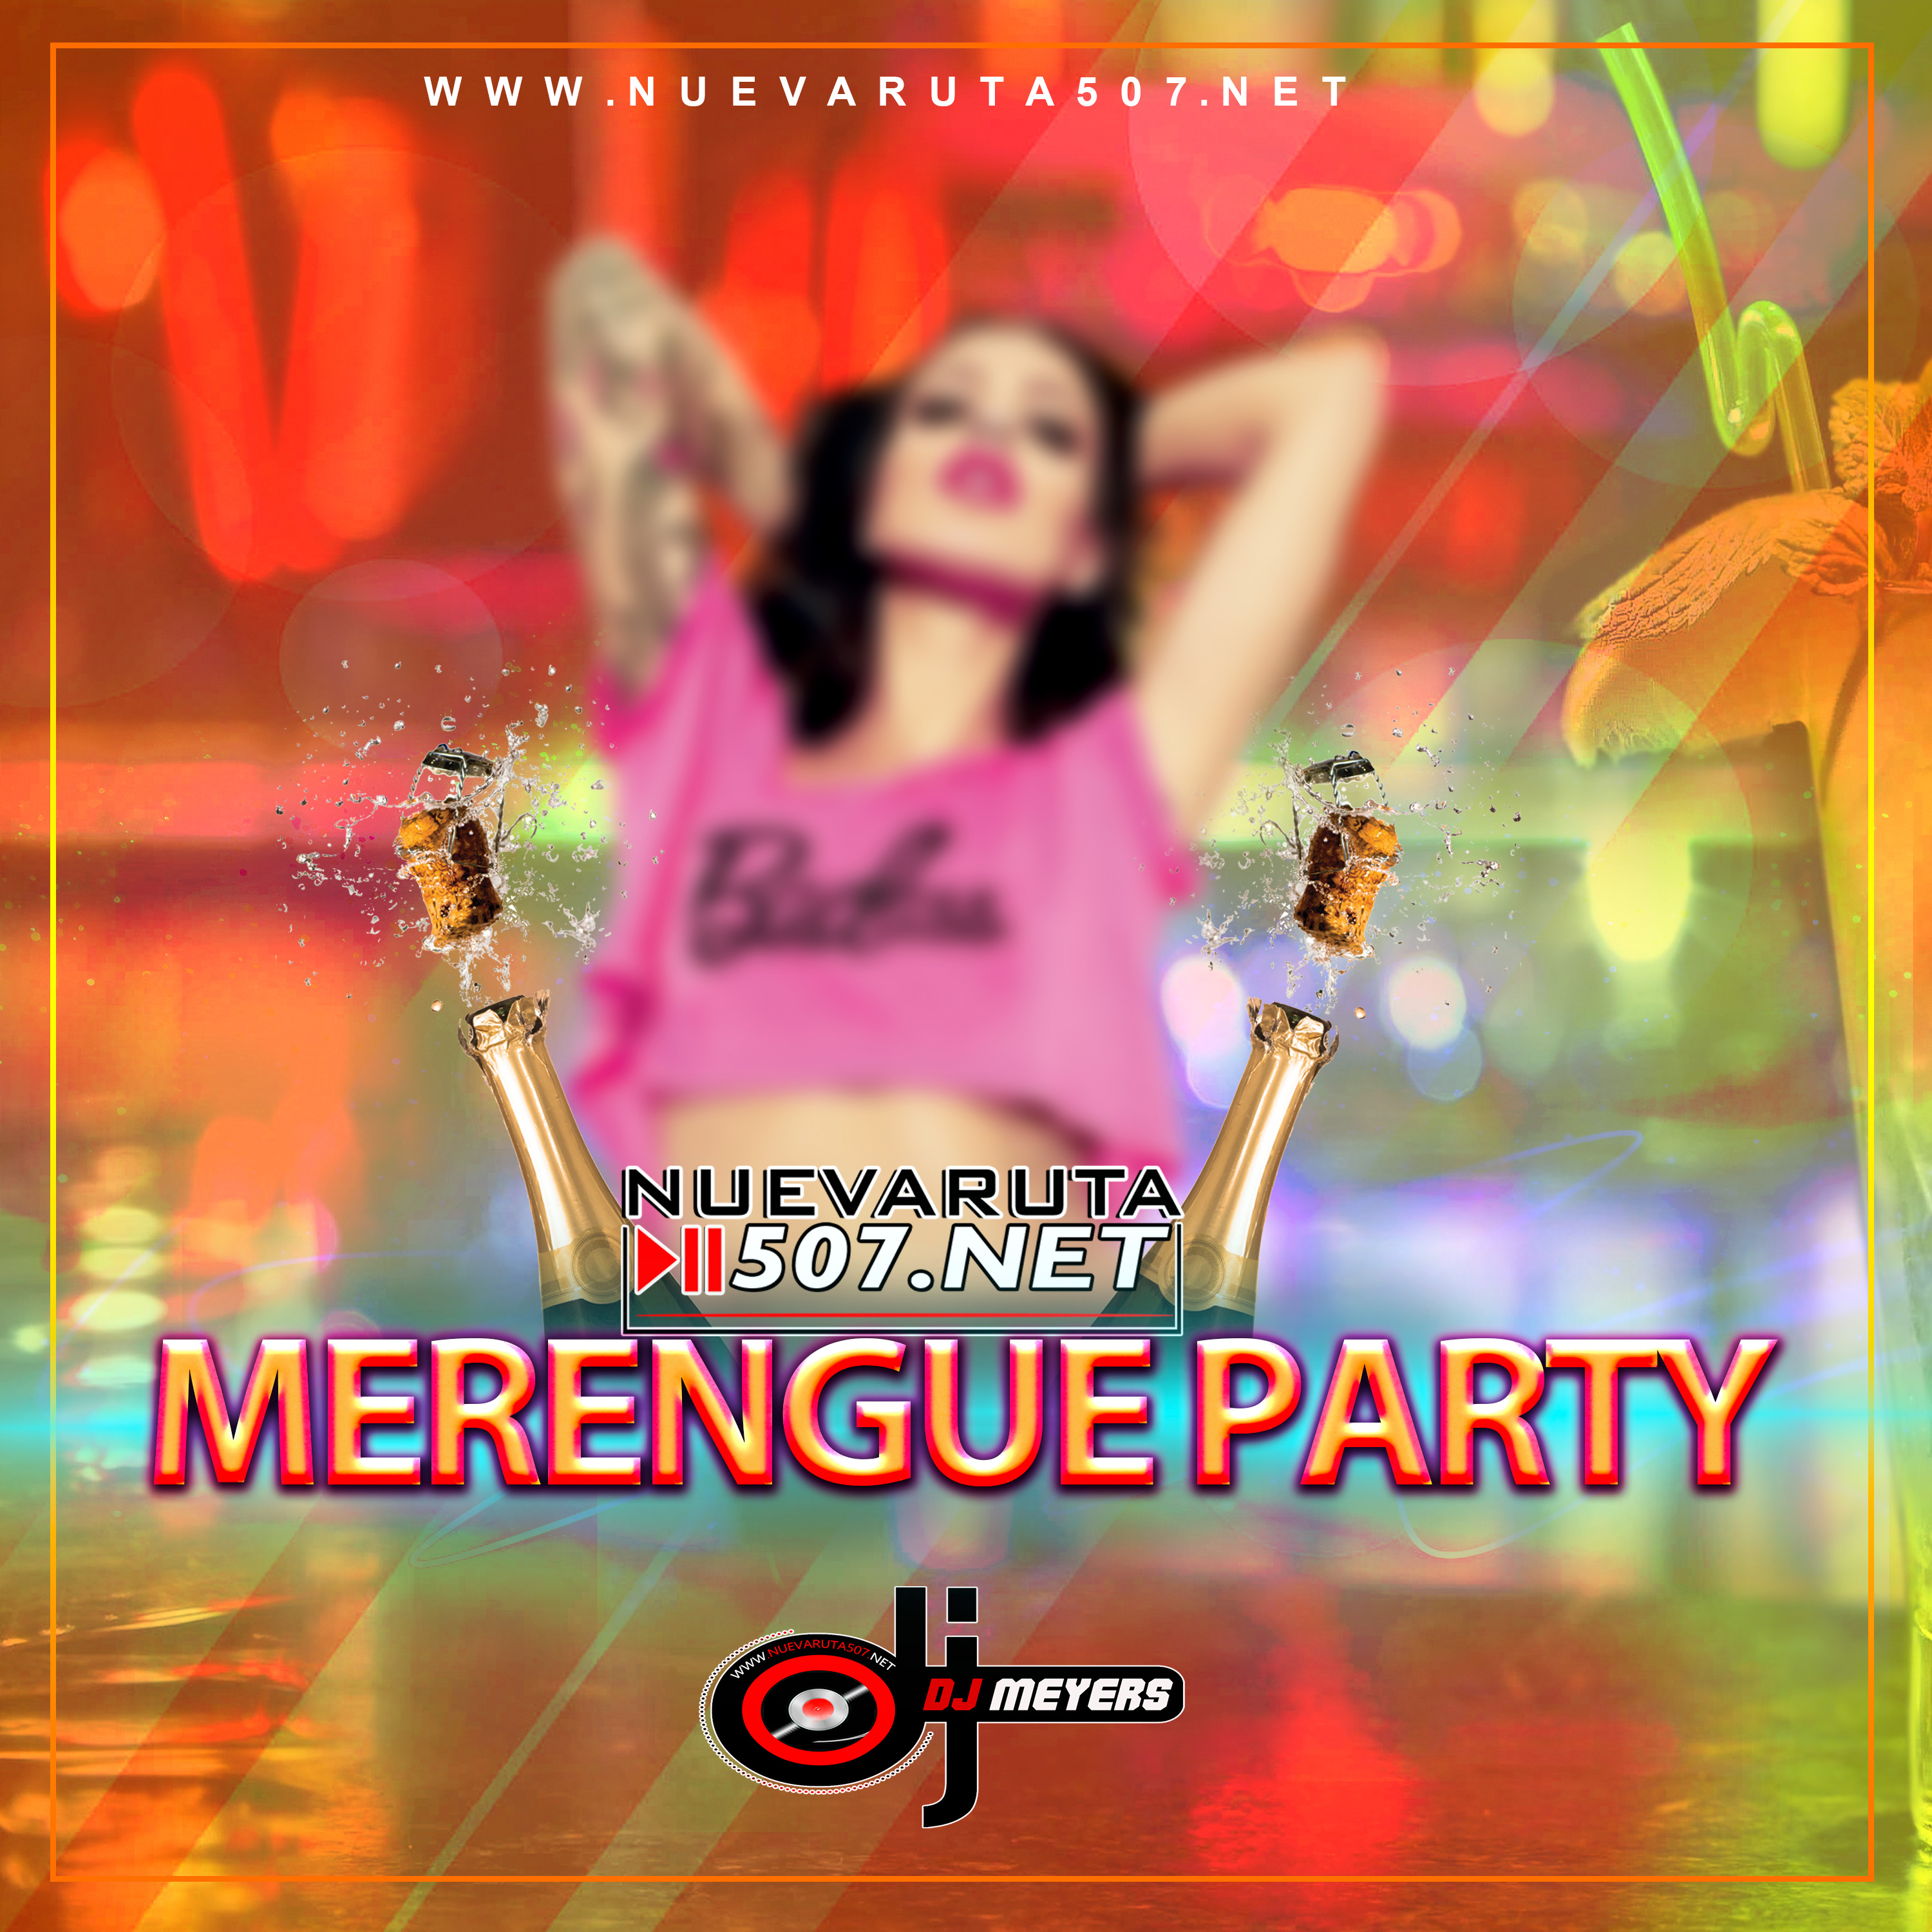 Dj. Meyers - Merengue Party Mixtape.mp3